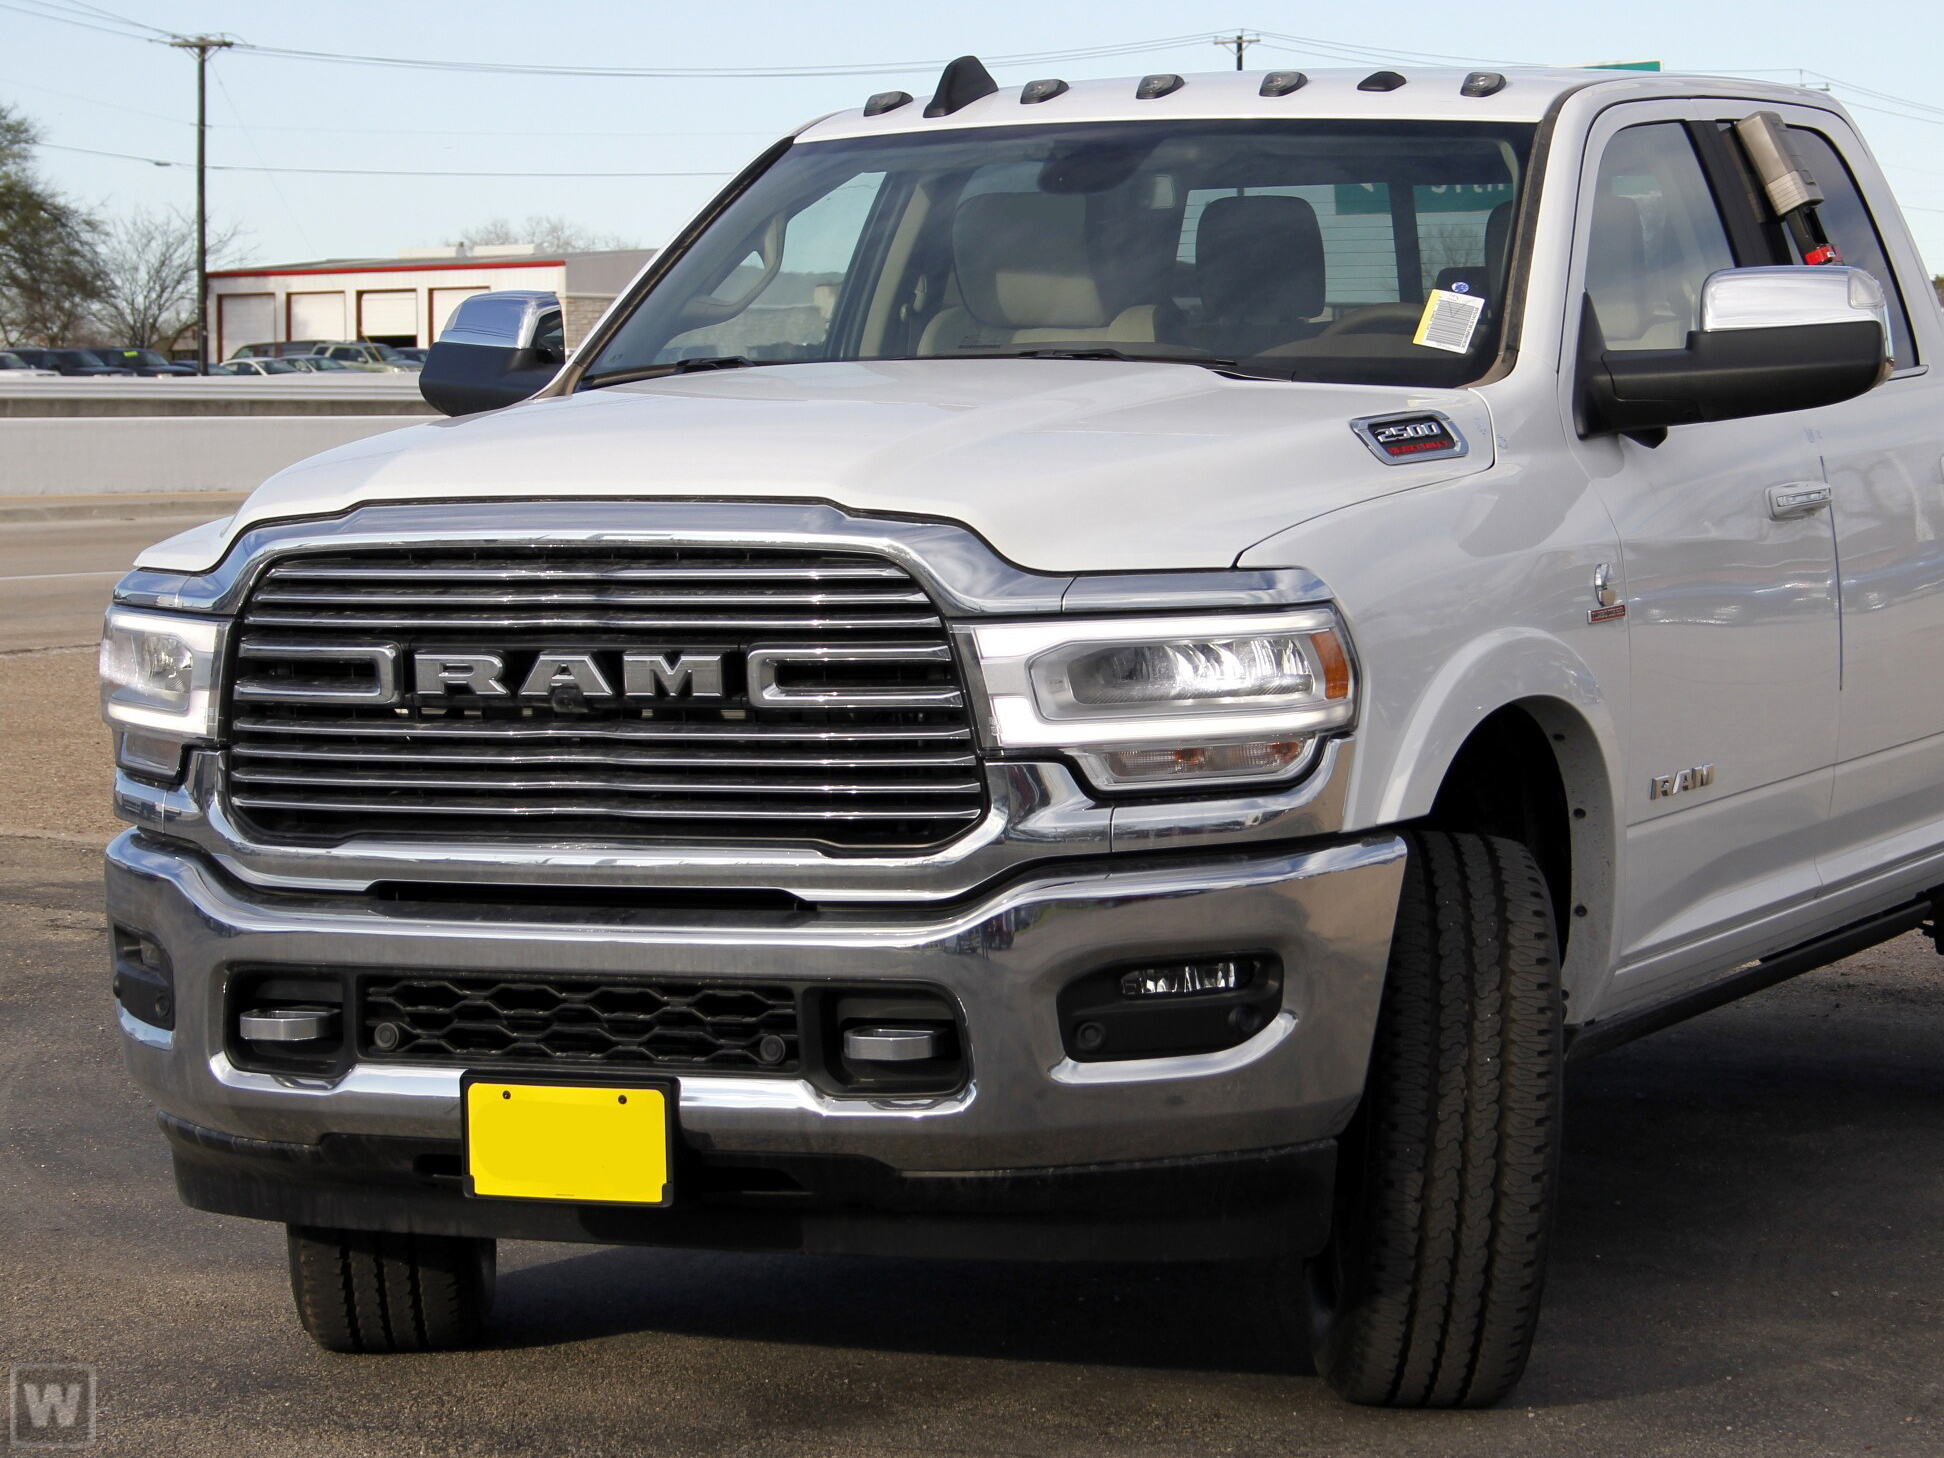 2020 Ram 2500 Crew Cab 4x4, Pickup #620966 - photo 1